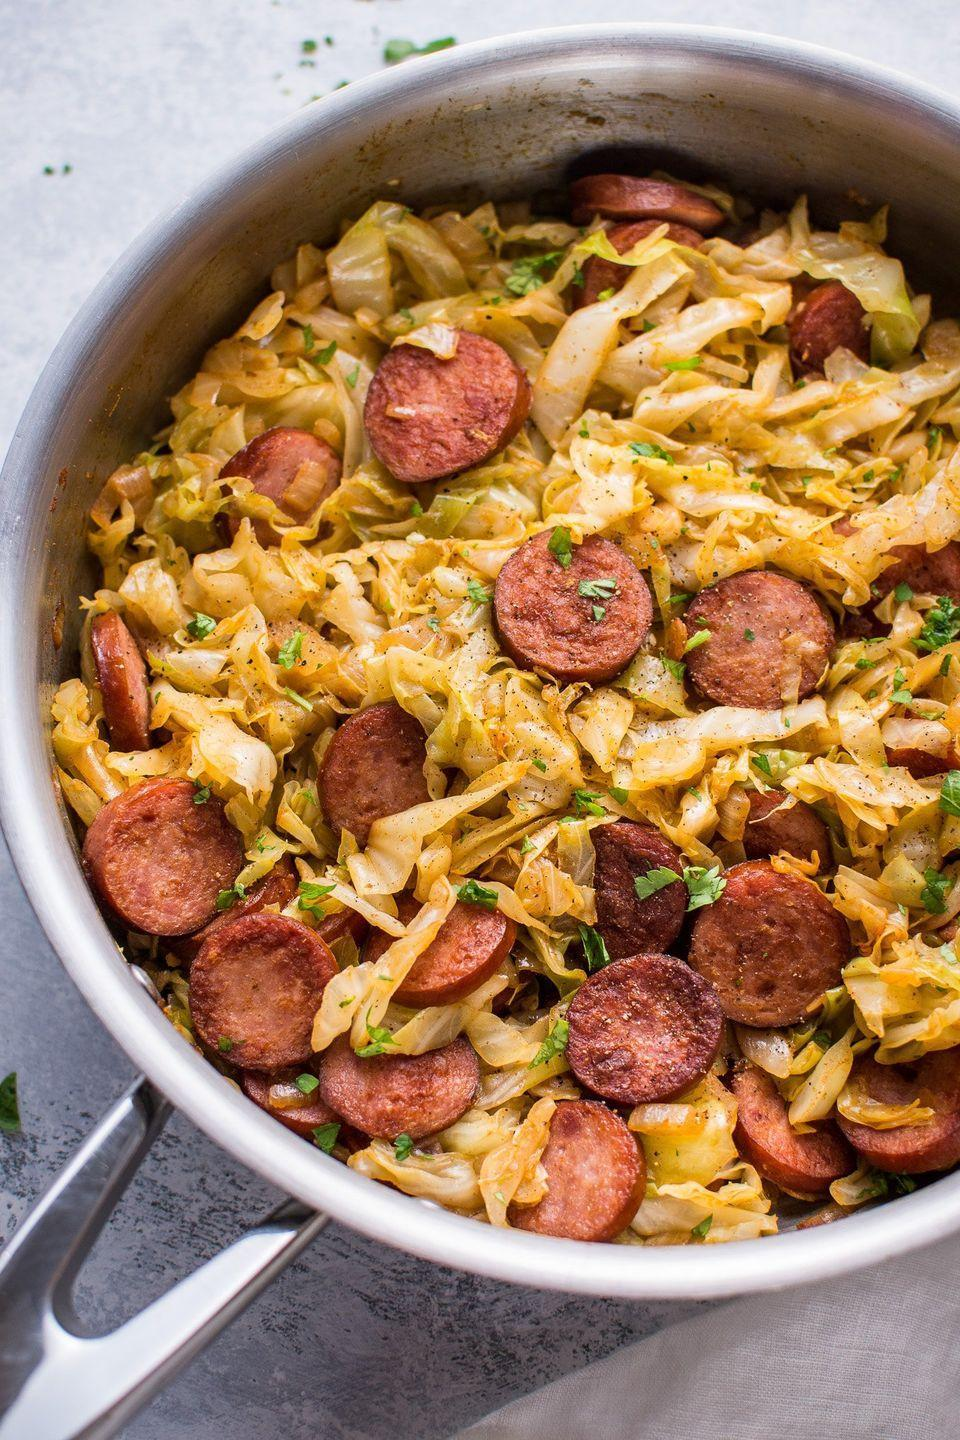 """<p>You need this one-skillet meal in your dinner rotation.</p><p>Get the recipe from <a href=""""http://www.saltandlavender.com/sauteed-cabbage-kielbasa/"""" rel=""""nofollow noopener"""" target=""""_blank"""" data-ylk=""""slk:Salt & Lavender"""" class=""""link rapid-noclick-resp"""">Salt & Lavender</a>.</p>"""